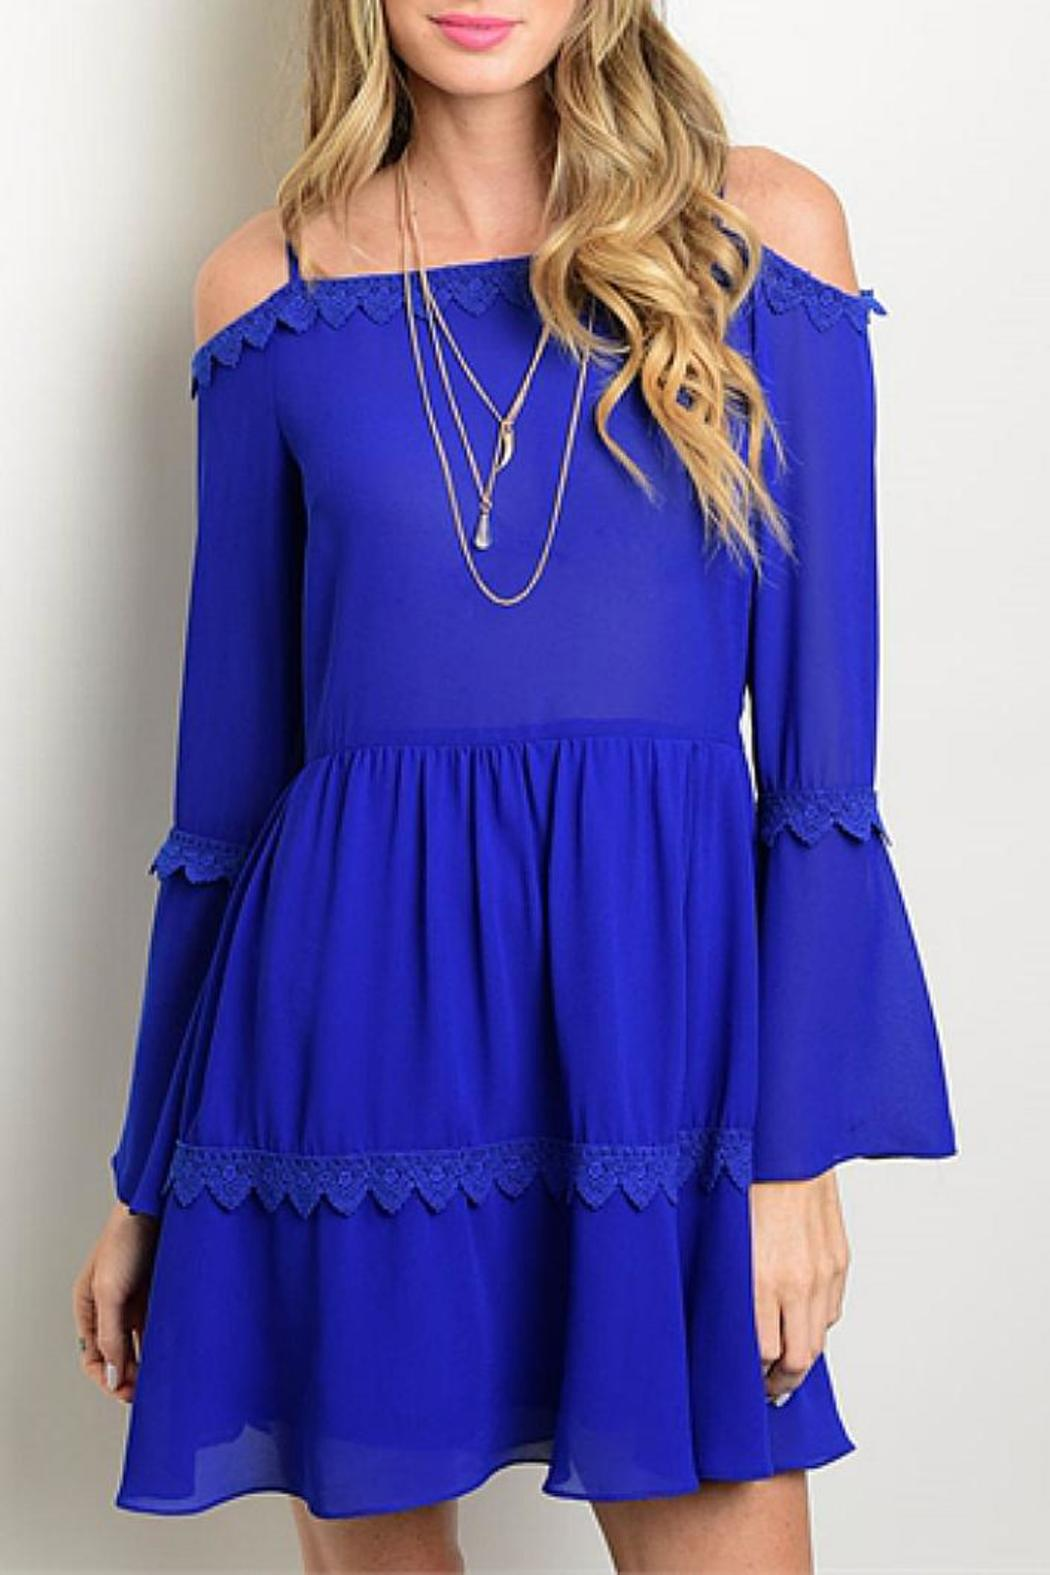 La Reyna  Blue Off The Shoulder Dress - Main Image